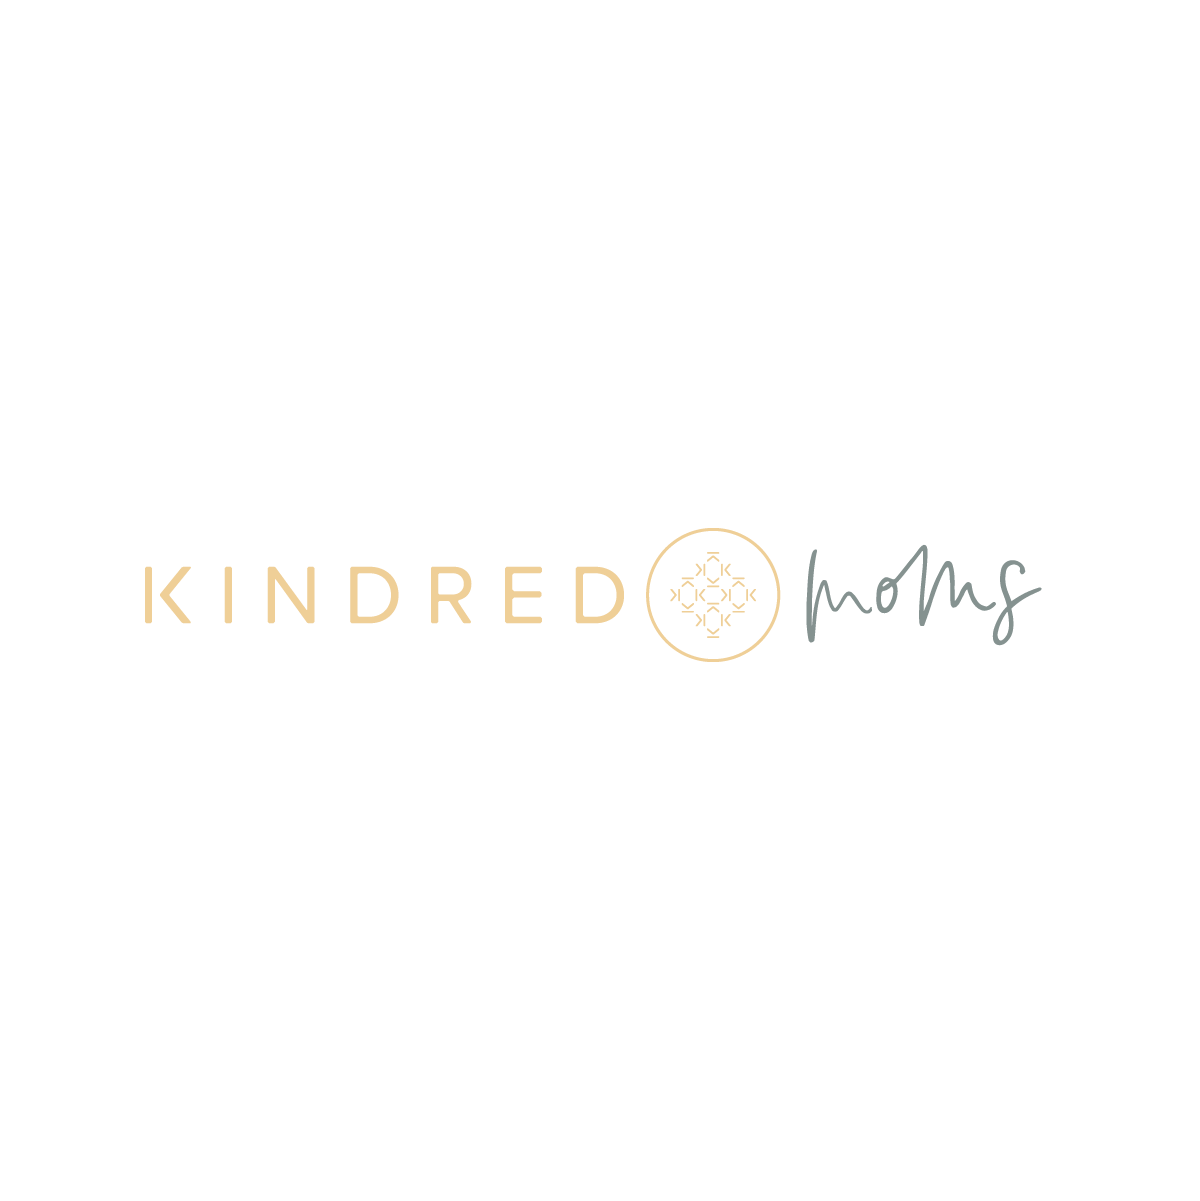 Kindred Vector Logos-16.png